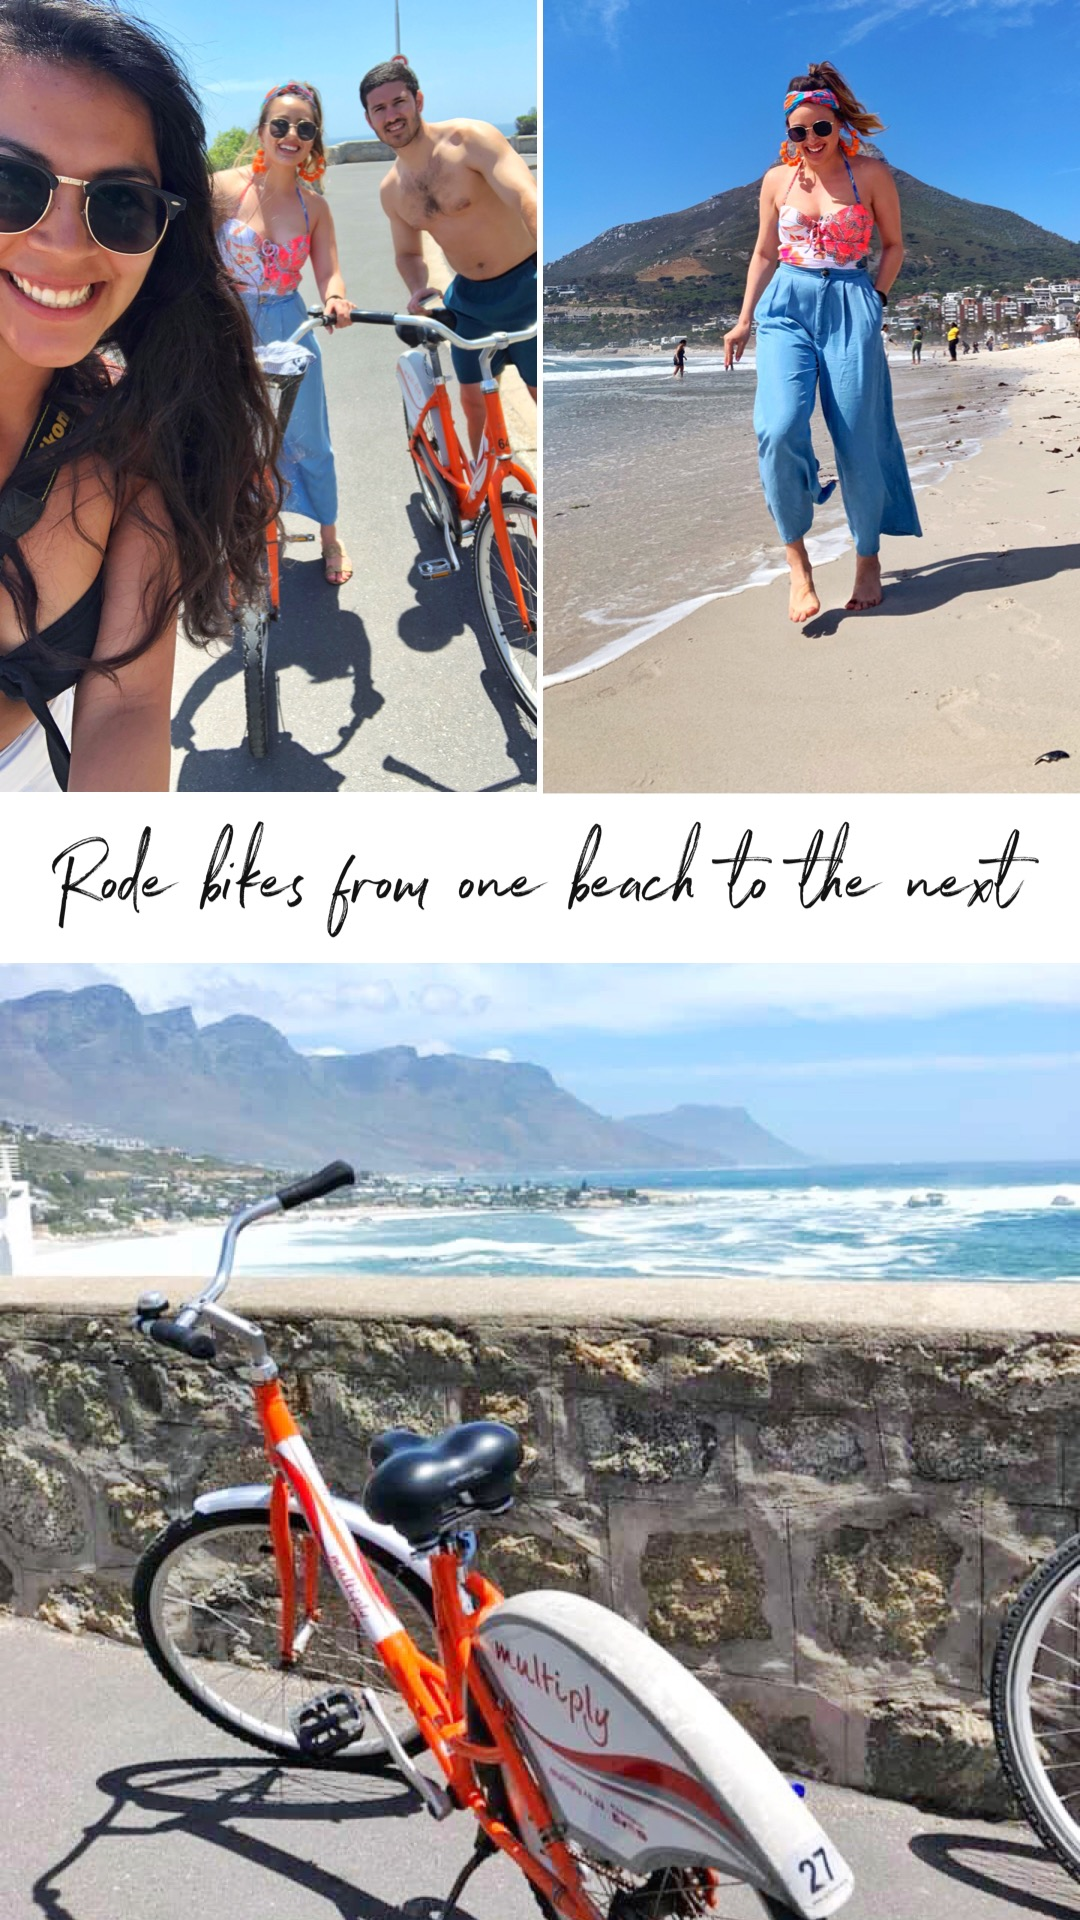 Bike Riding Along the Seawall - I absolutely love riding bikes when we're on vacation, since we normally like to walk everywhere this is an alternative that gives my feet a break! Riding along the beaches while getting a tan, feeling that wind in your face and smelling the salt from the sea was wonderful.We ate at the Codfather in Camps Bay and the seafood was so fresh and so so good! The sushi was almost just as good as in Japan! Highly recommend!